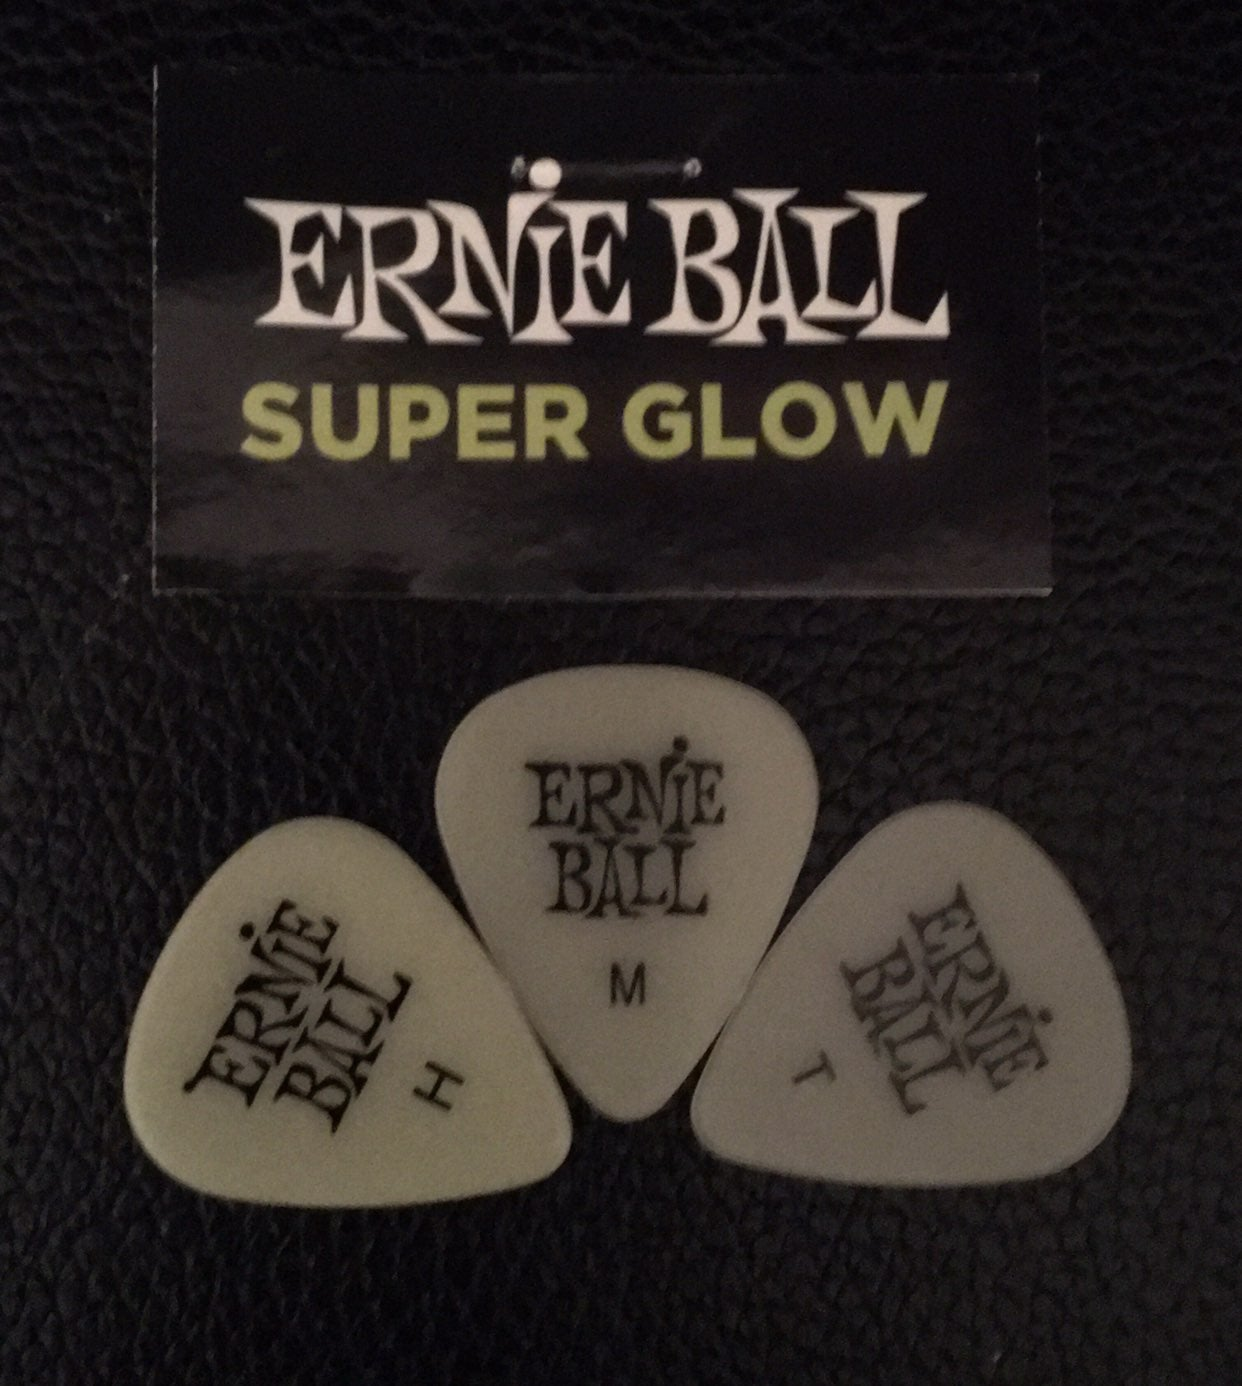 Sample set of Ernie Ball guitar picks